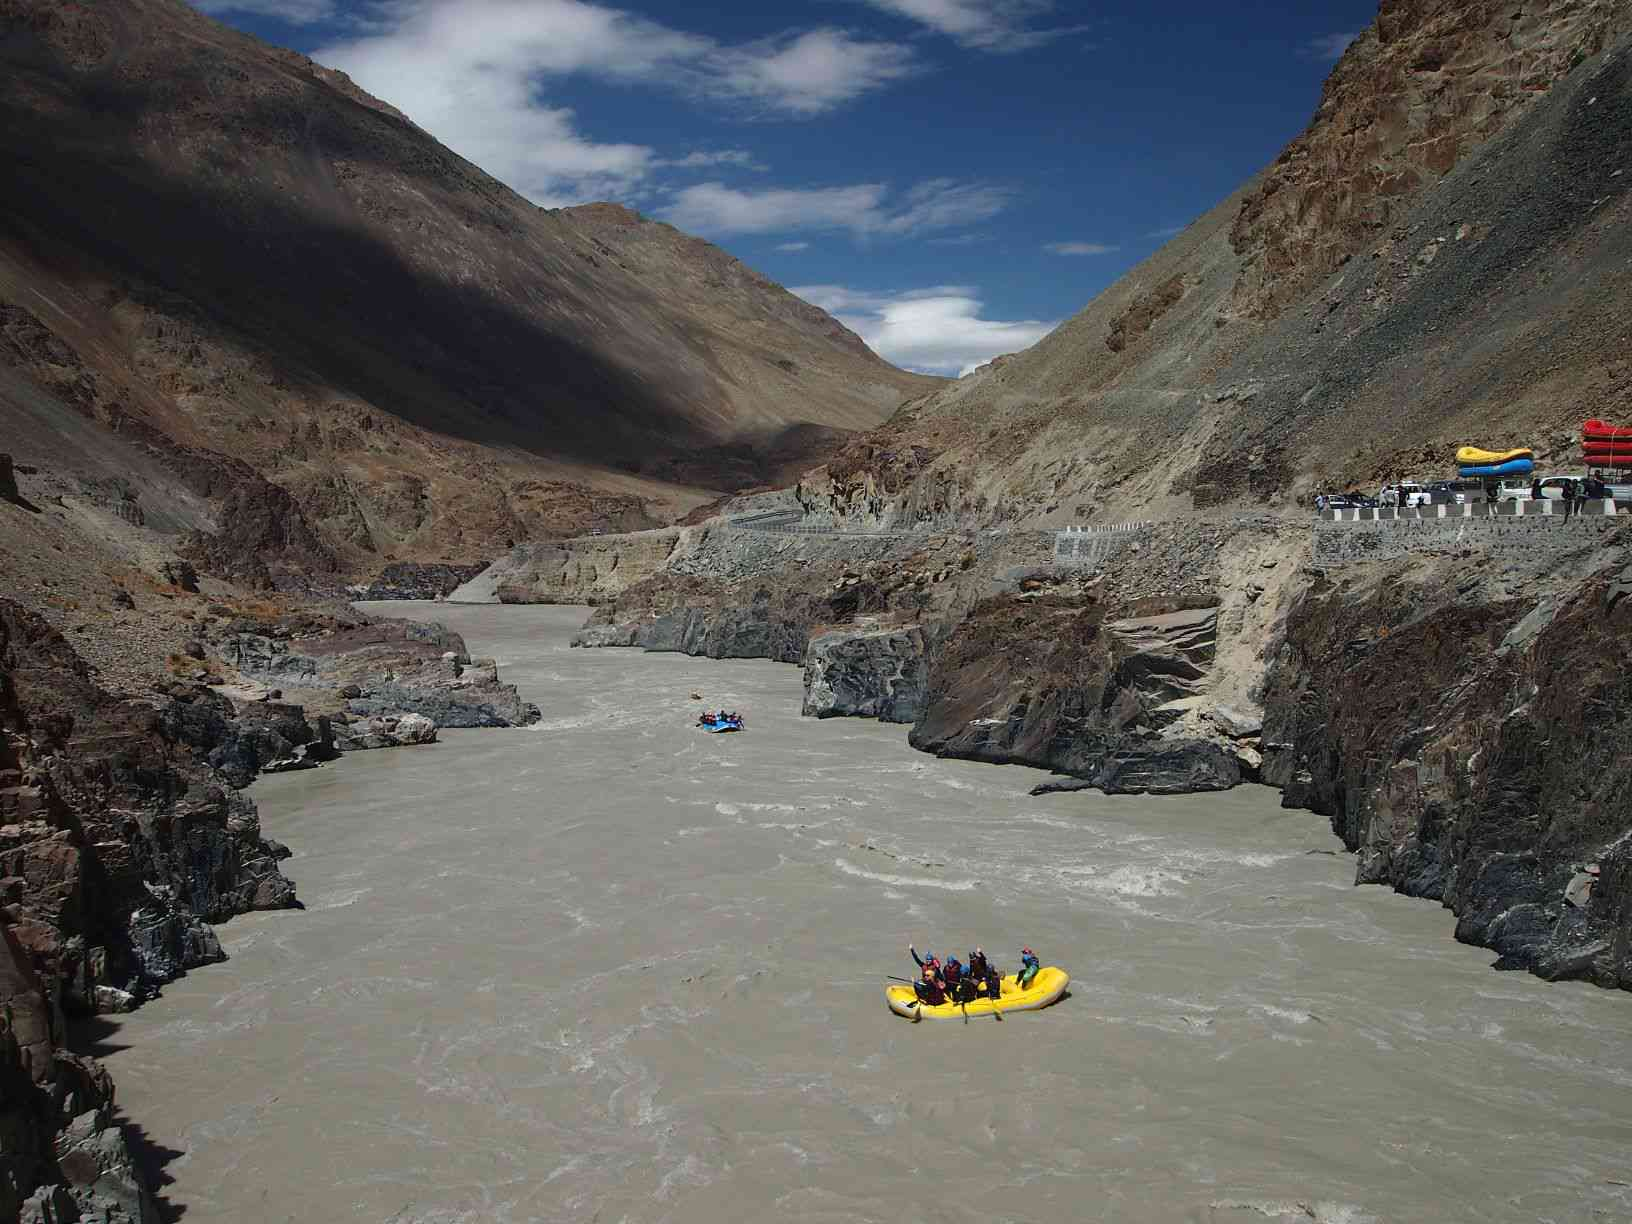 rafts floating on a grey river surrounded by brown mountains